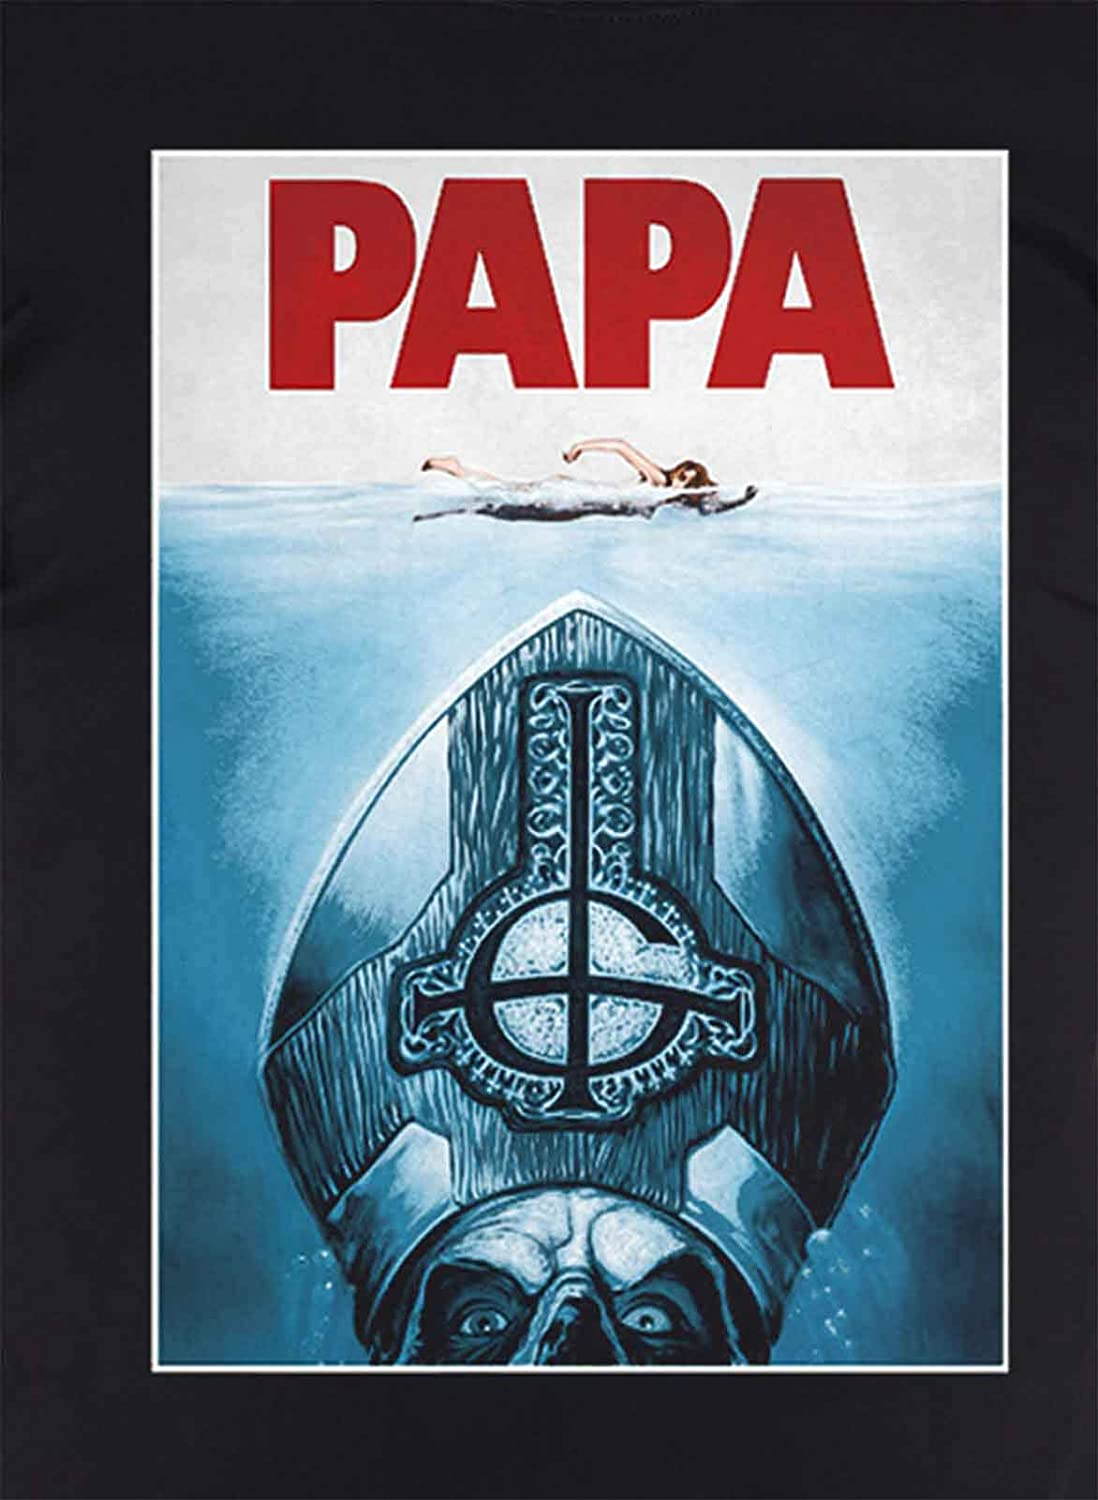 Ghost /'Papa Jaws/' T-Shirt NEW /& OFFICIAL!